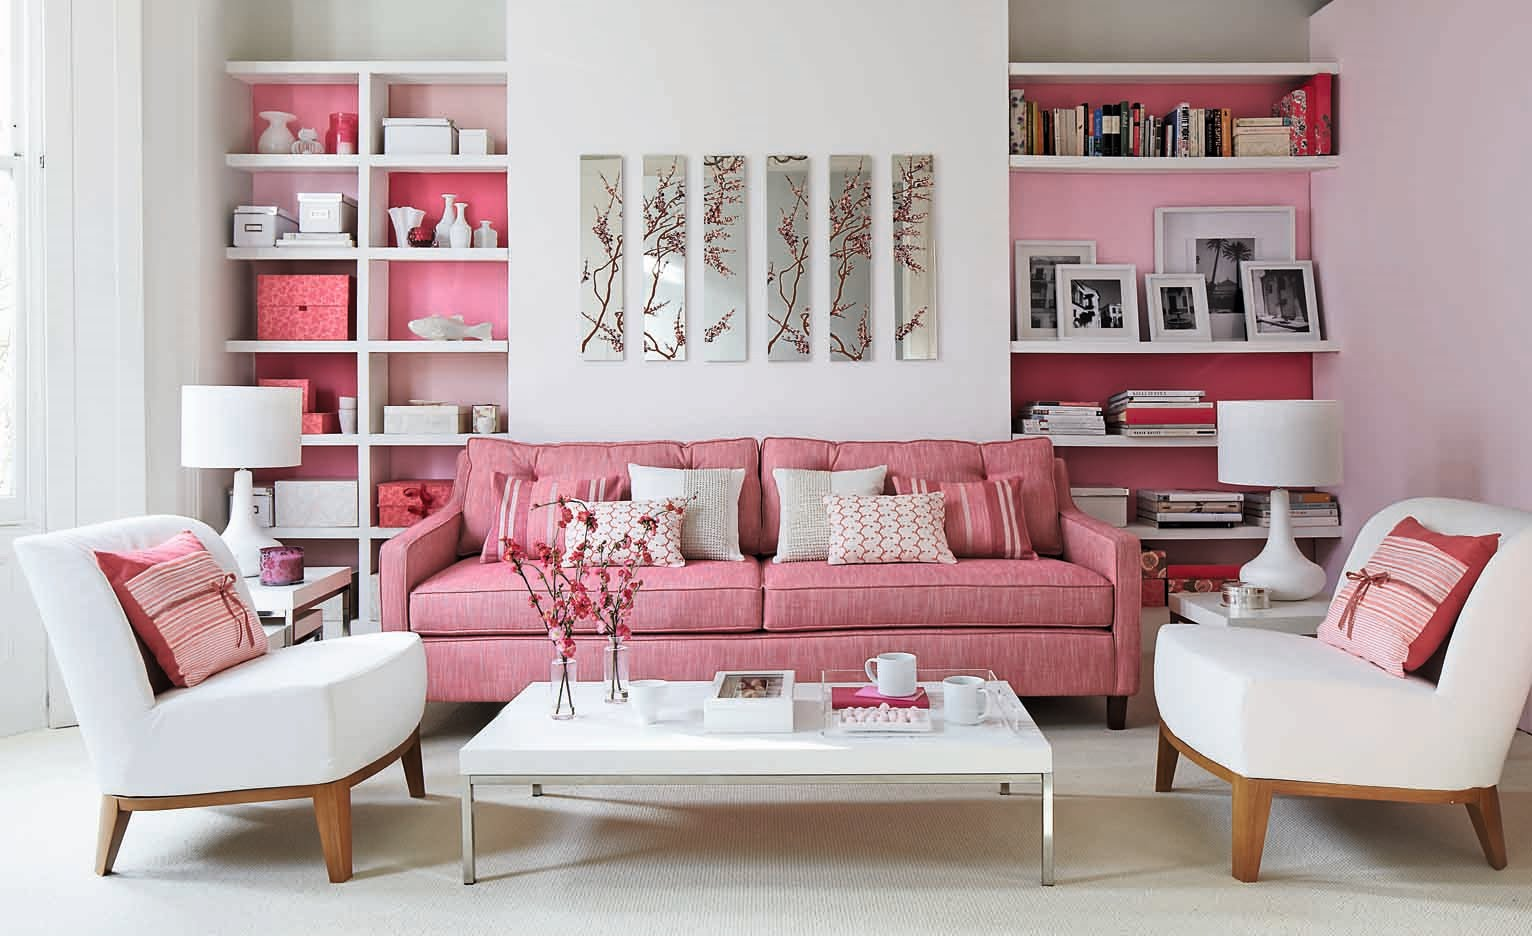 pink couches living room creative juice think pink 16226